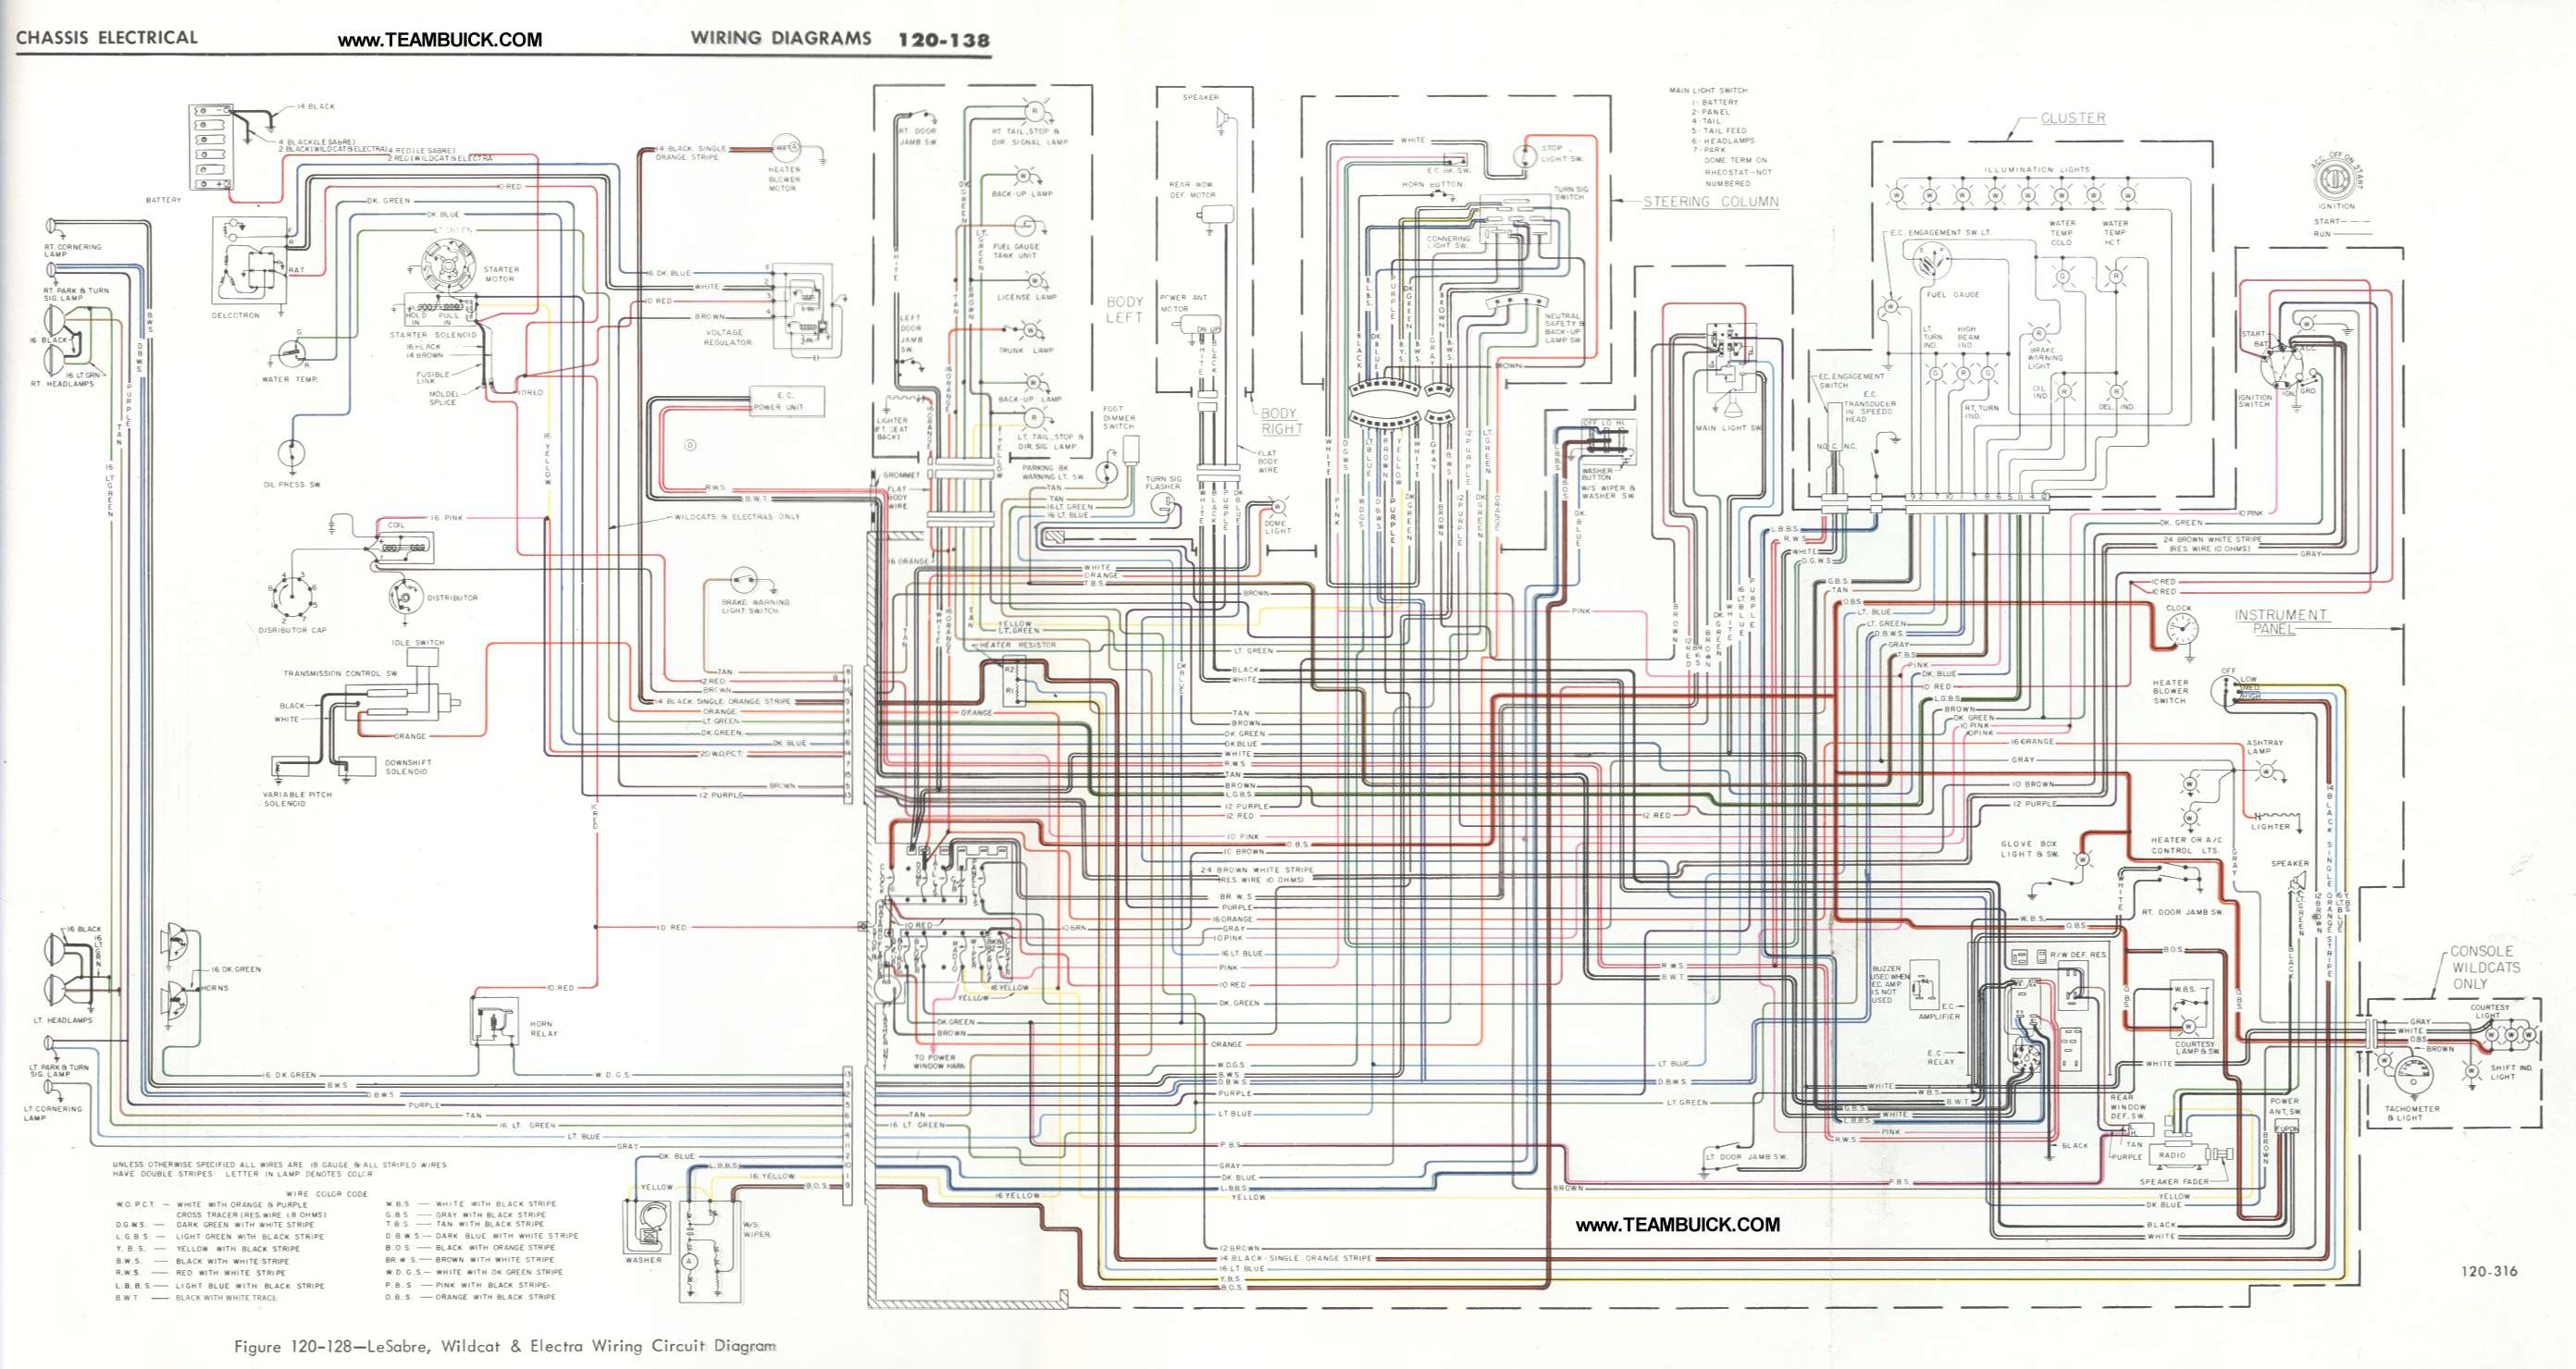 Magnificent Buick Electra Wiring Diagram Wiring Diagram Dandim Mohammedshrine Wiring Diagrams Dandimmohammedshrineorg